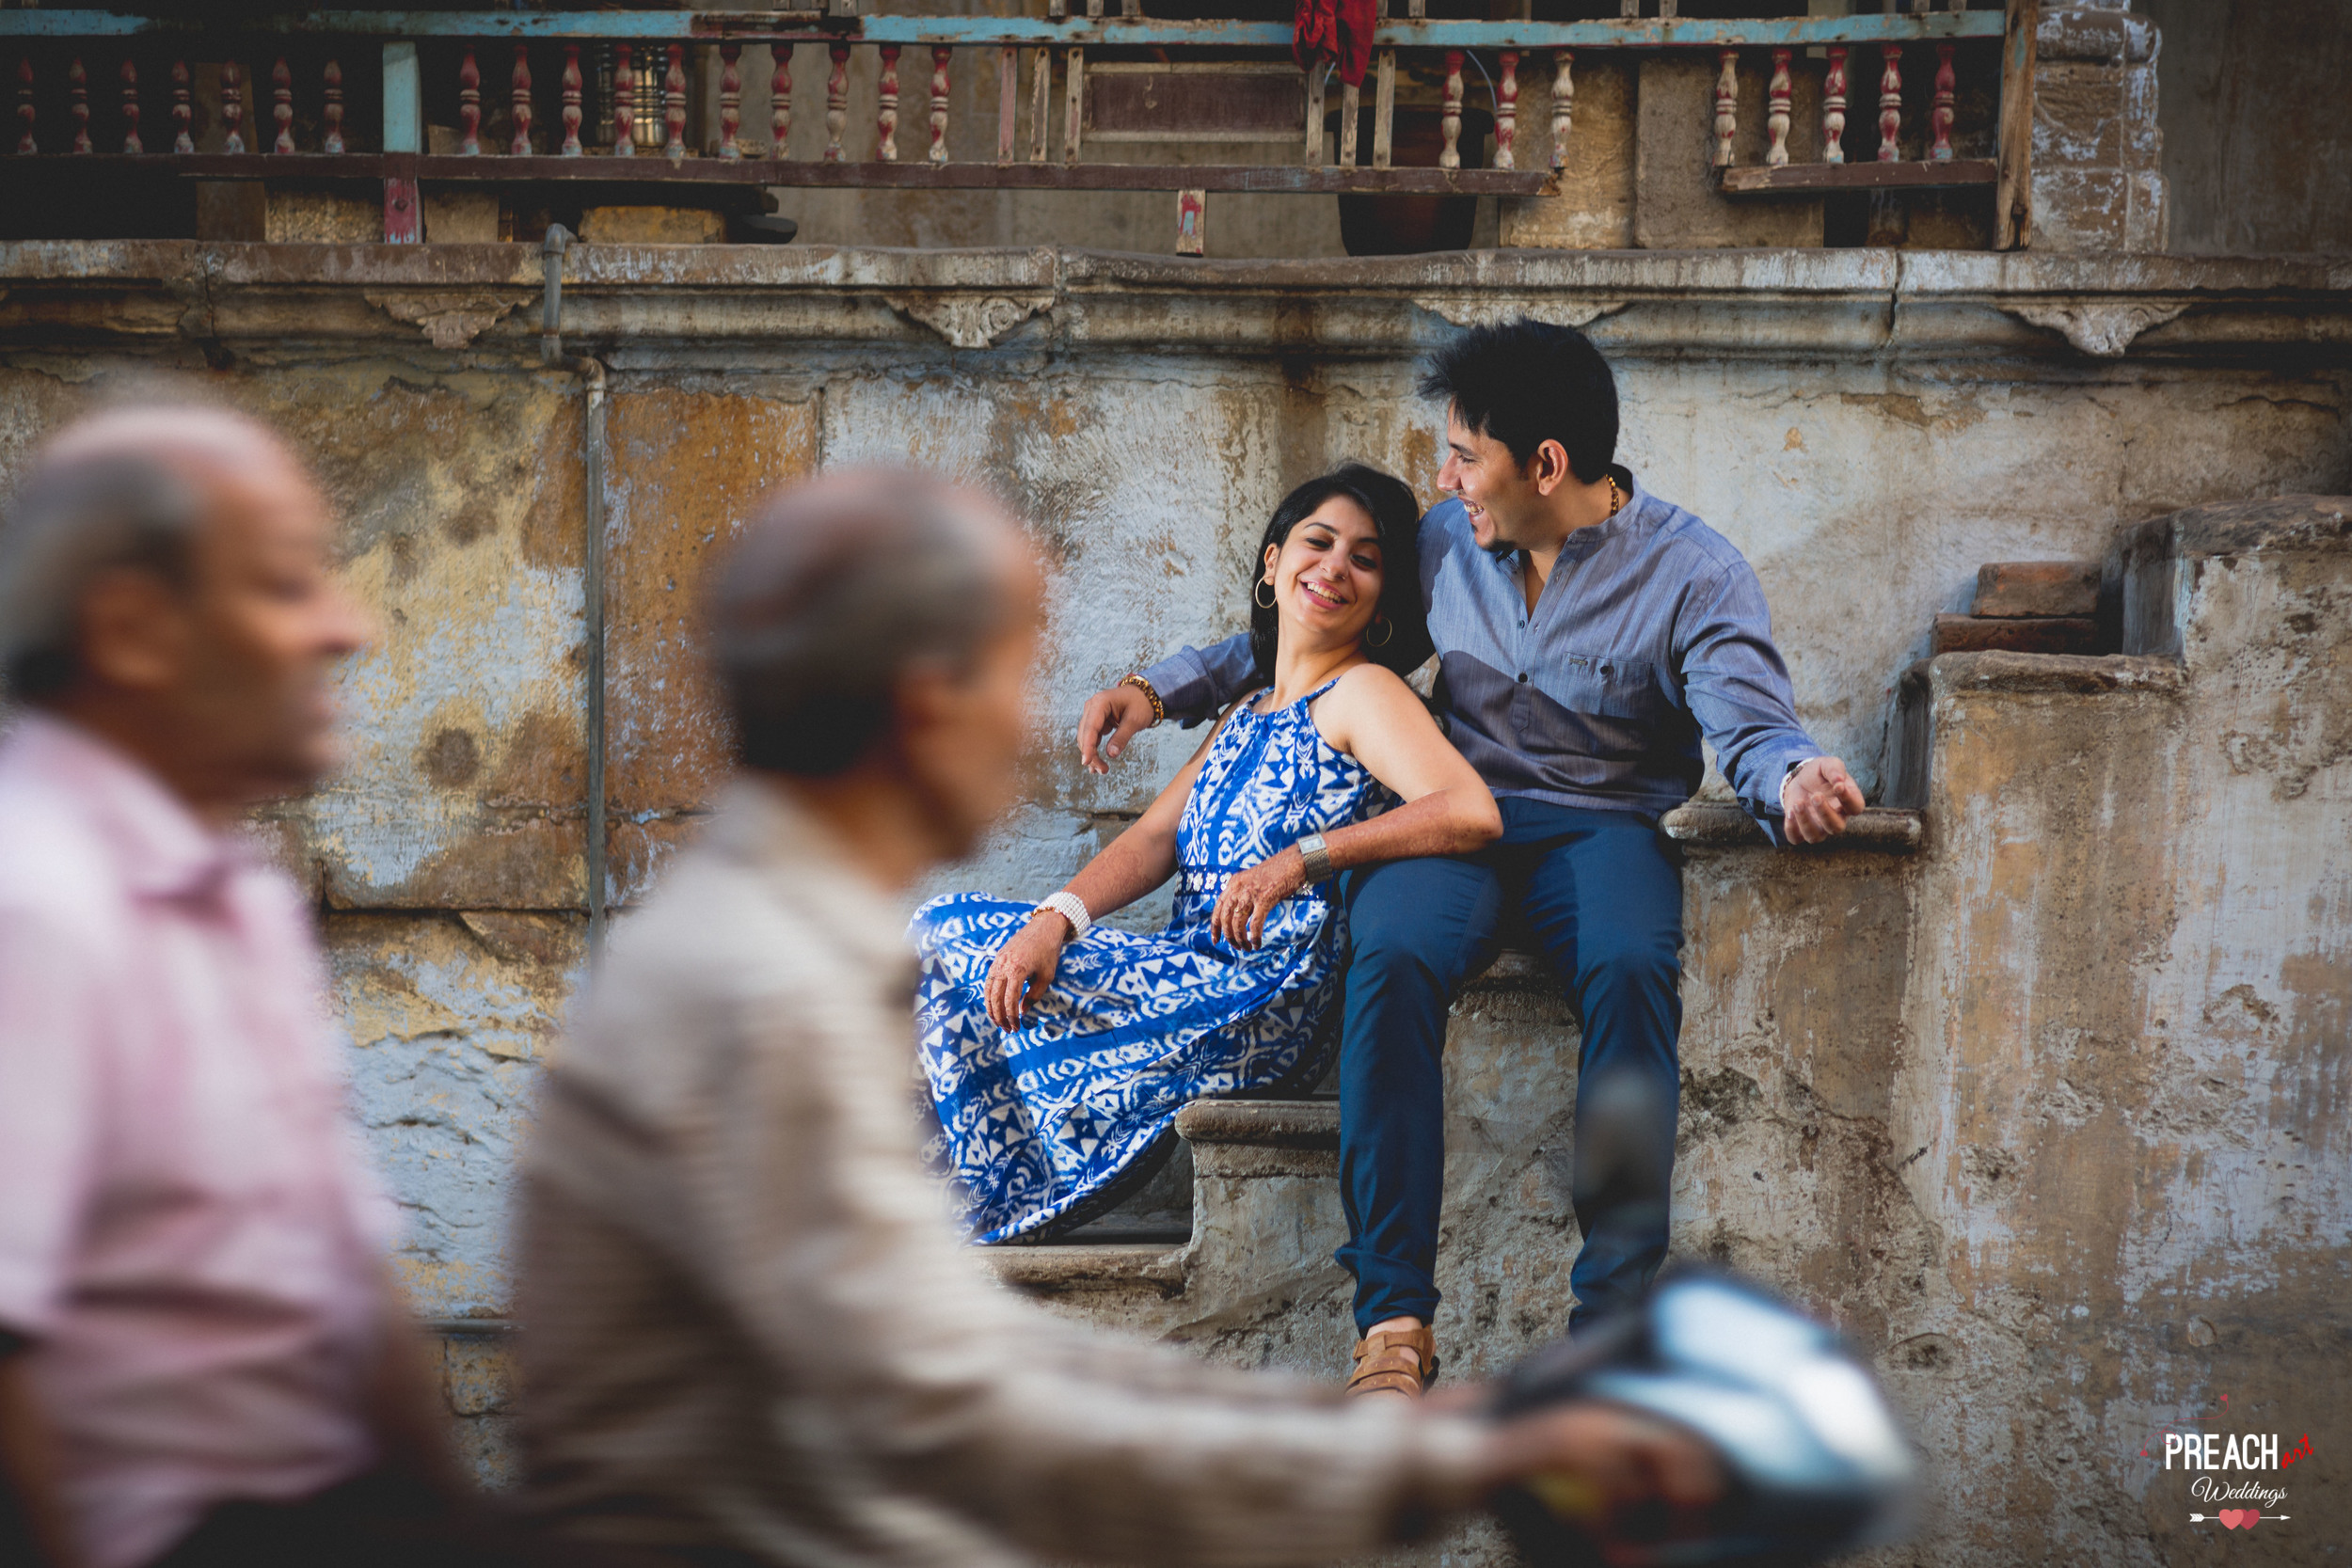 V&M_PRE-WEDDING SHOOT_AHMEDABAD OLD CITY_PREACH ART-6.jpg